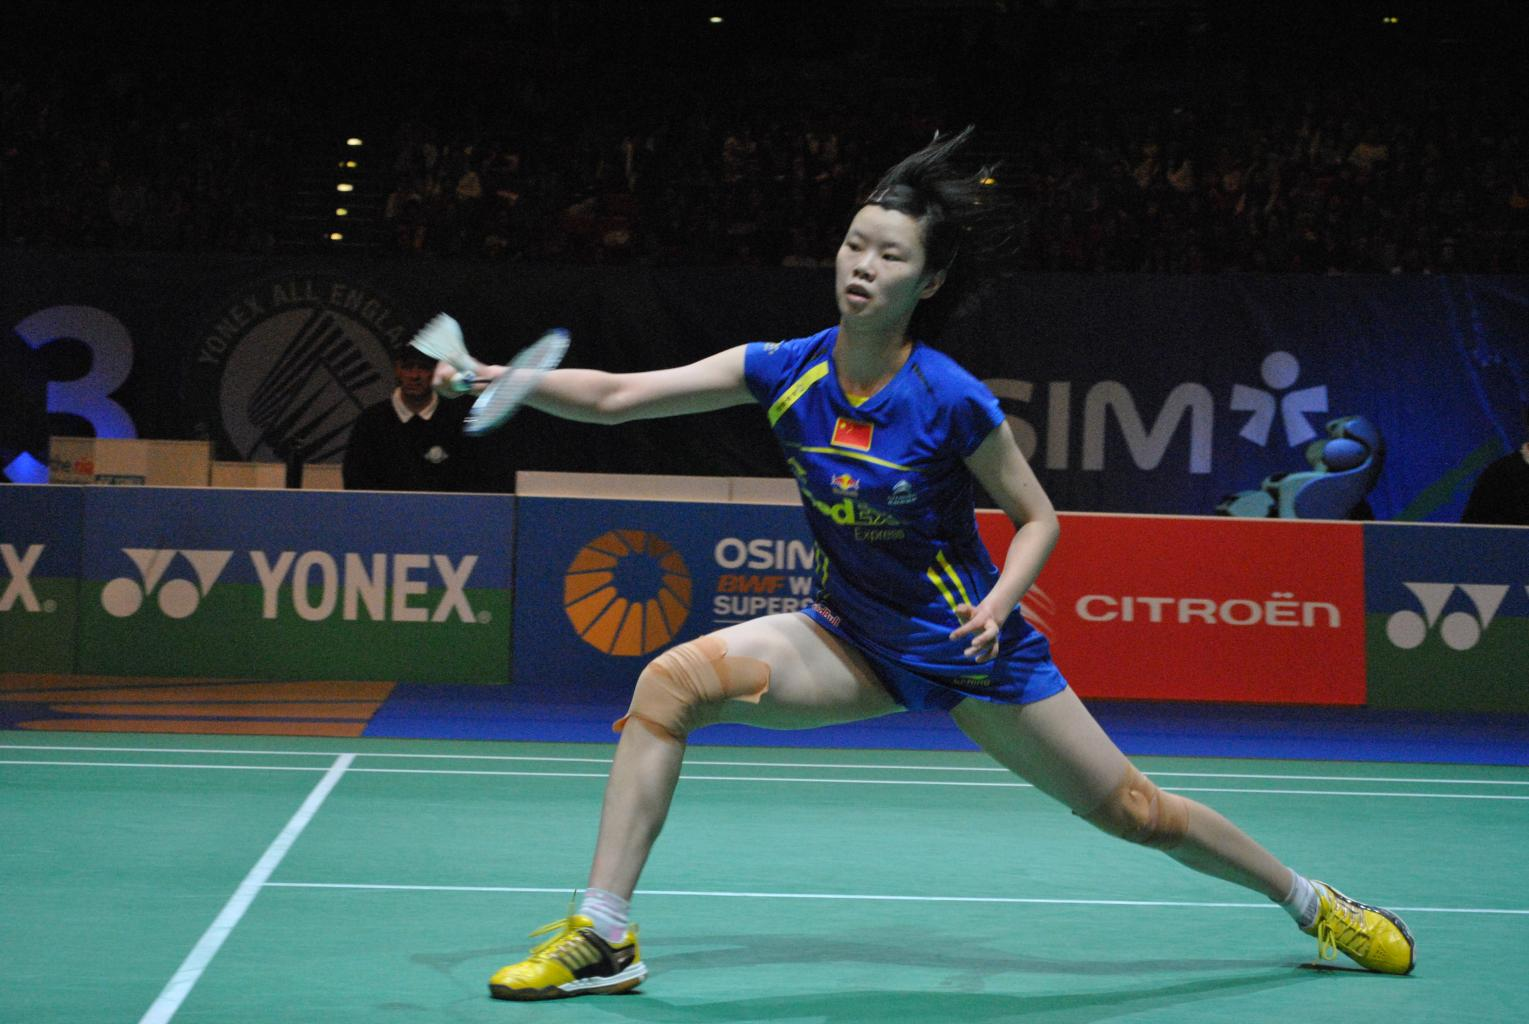 Li Xuerui Archives - Yonex All England Open Badminton Championships